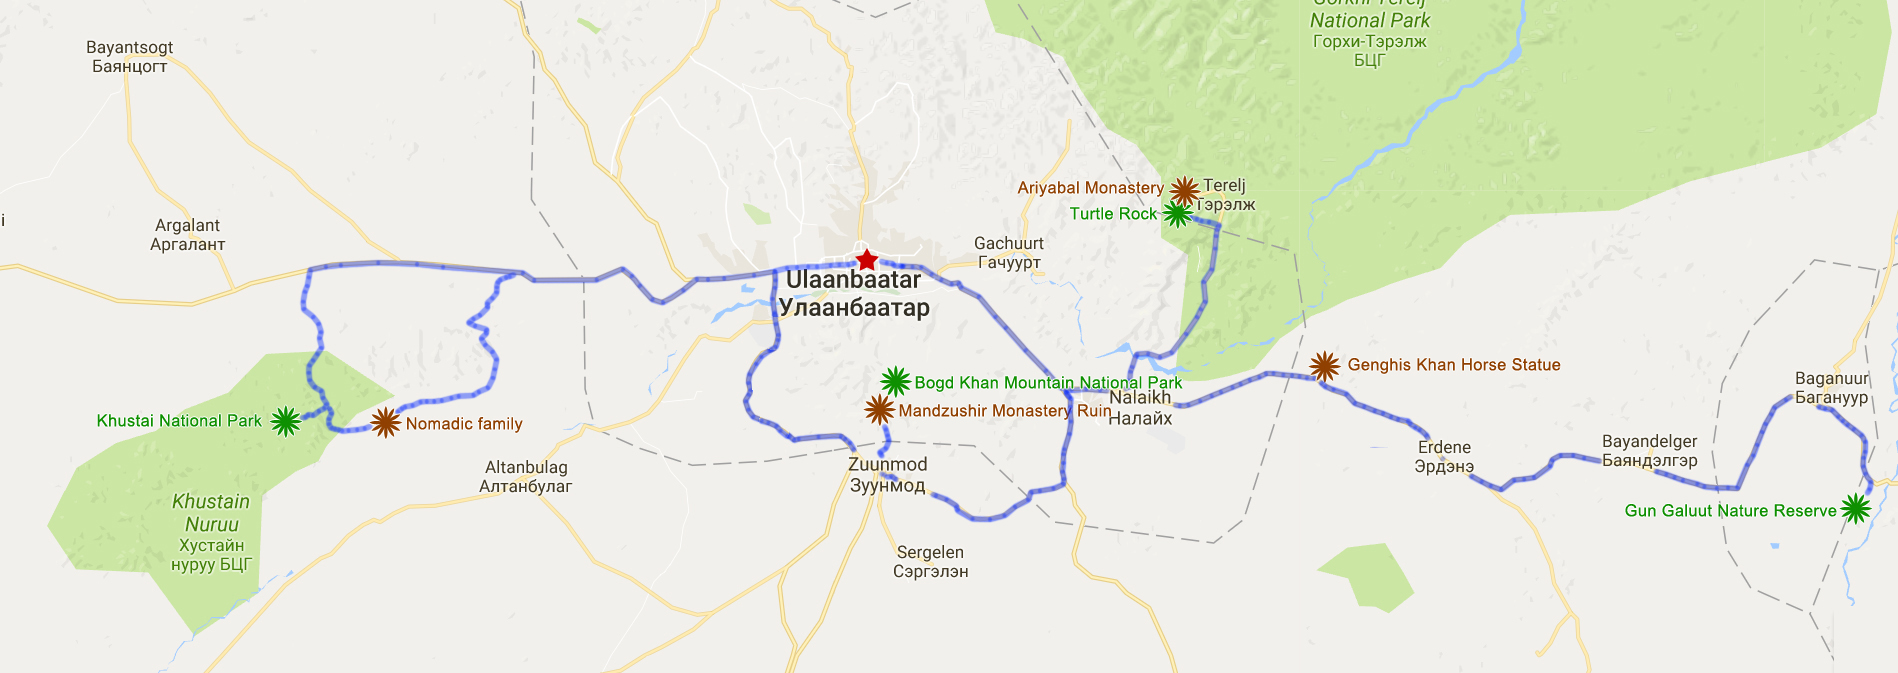 map of All Bests Around Ulaanbaatar Tour Travel Gobi Mongolia